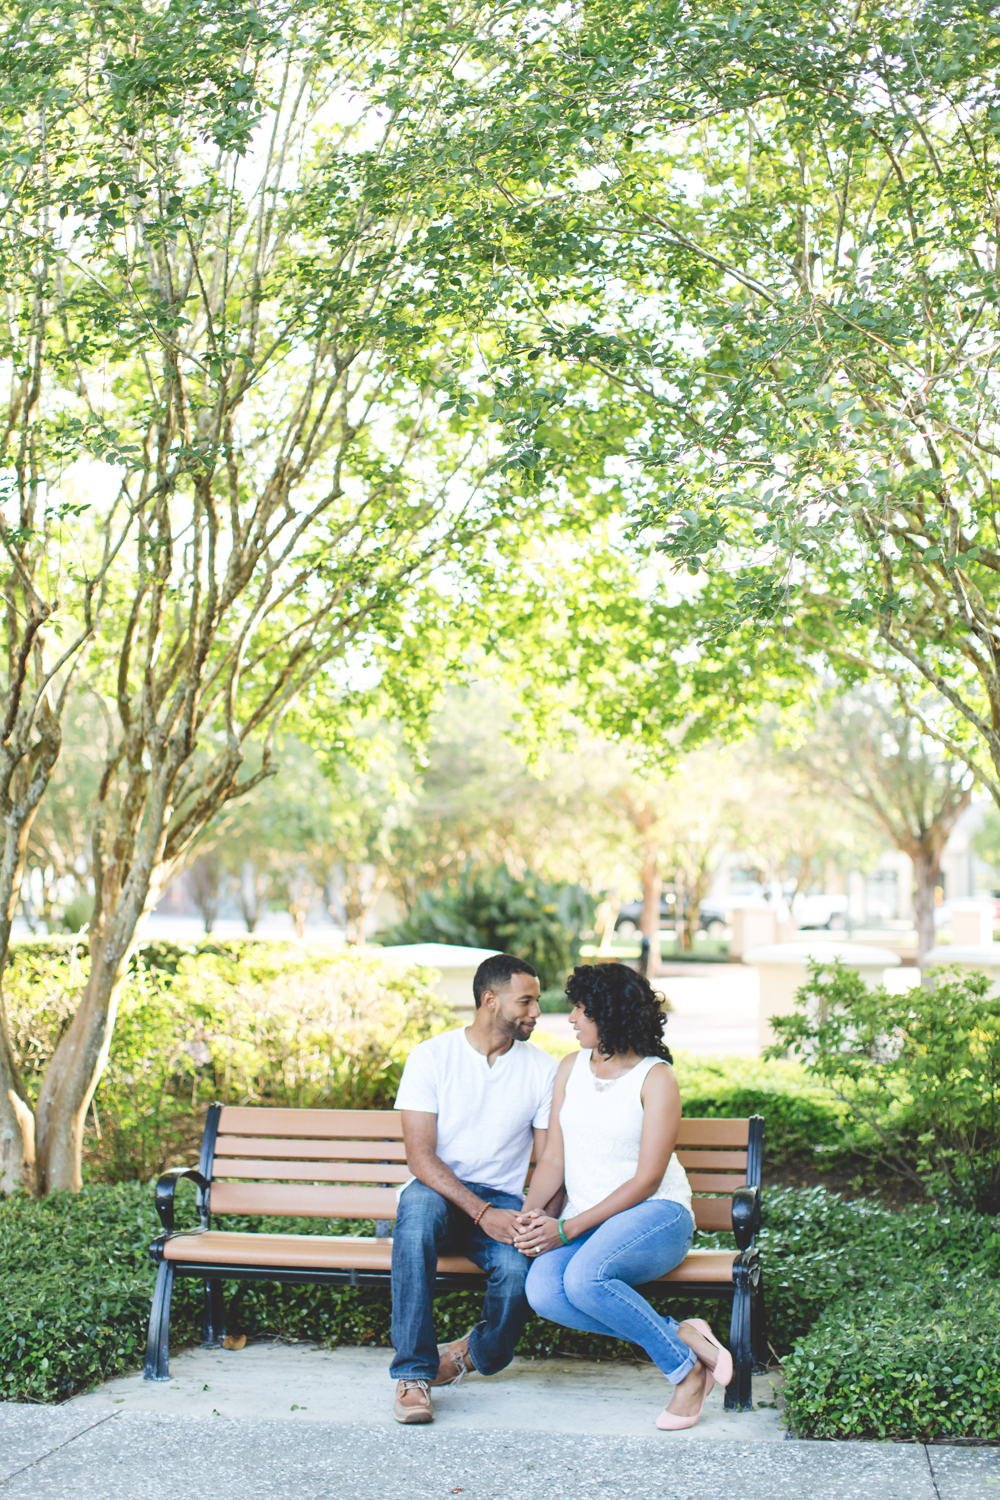 Destination Orlando Wedding Photographer -Harmony Golf Preserve Wedding Photographer - Harmony Golf Preserve Engagement session-1 - Jaime DiOrio (29).jpg